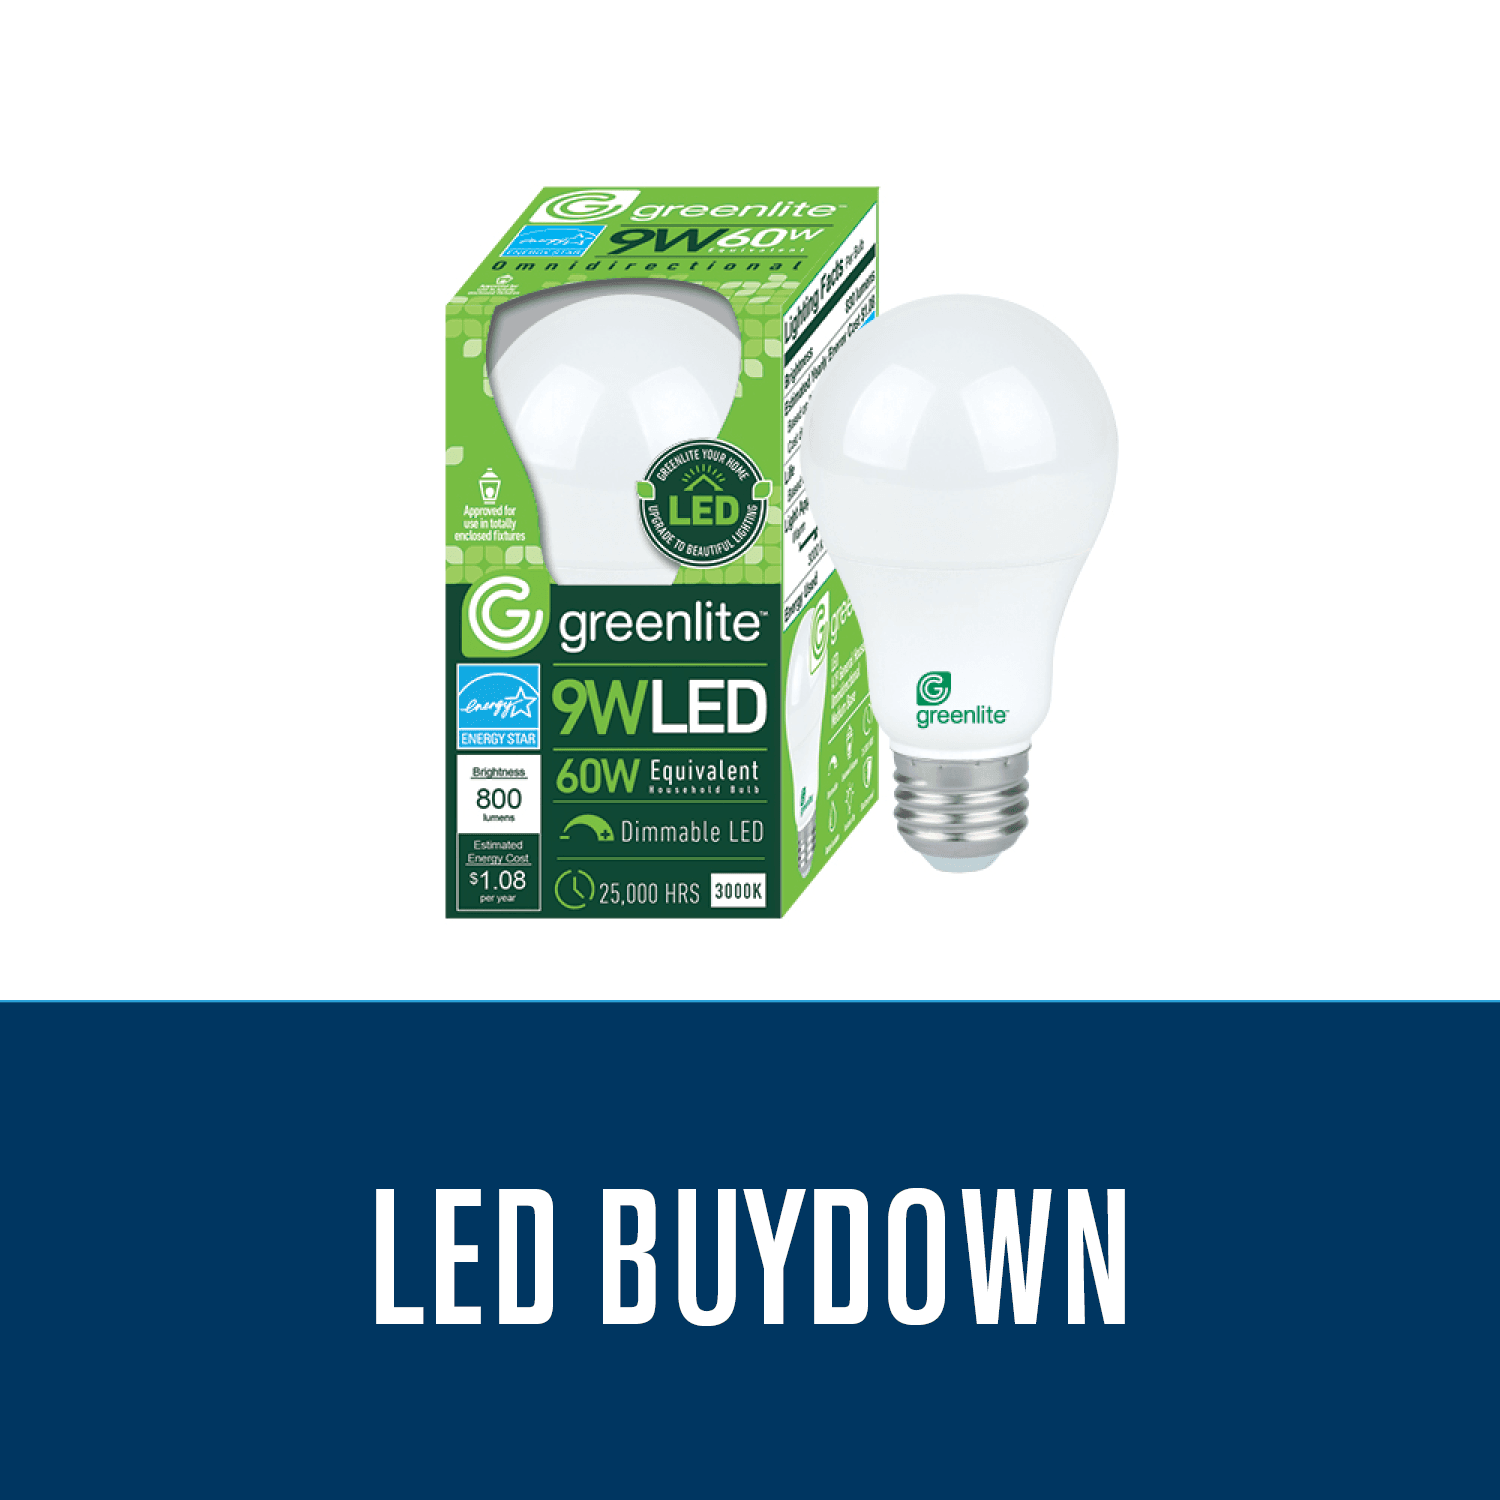 LED Buydown